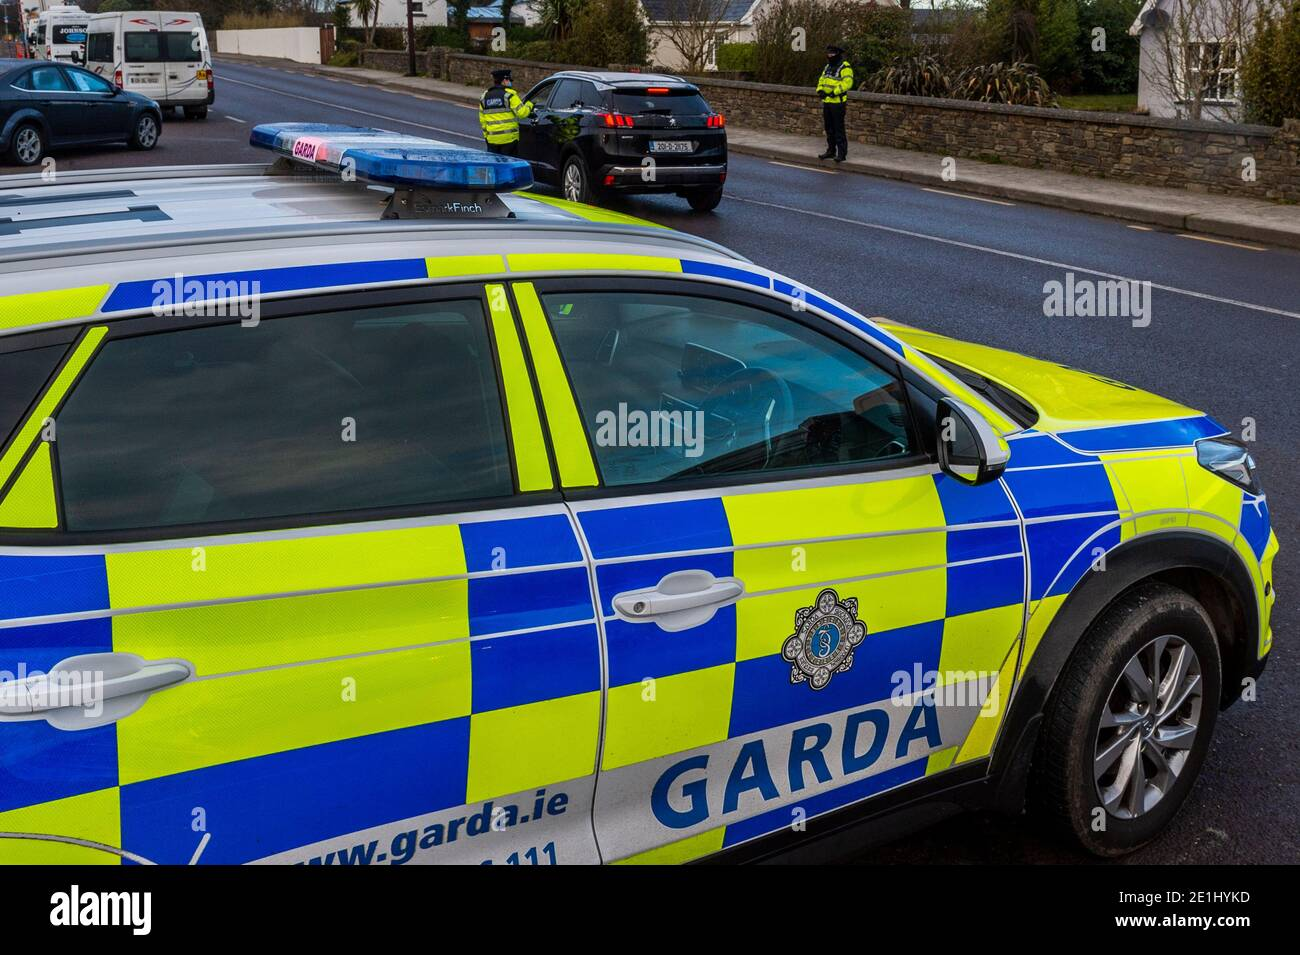 clonakilty-west-cork-ireland-7th-jan-2021-an-garda-siochana-recommenced-operation-fanacht-at-7am-this-morning-in-accordance-with-the-governments-level-5-restrictions-5km-travel-limit-as-well-as-static-checkpoints-gardai-will-introduce-mobile-checkpoints-across-the-country-this-checkpoint-was-on-the-n71-clonakilty-ringroad-credit-ag-newsalamy-live-news-2E1HYKD.jpg